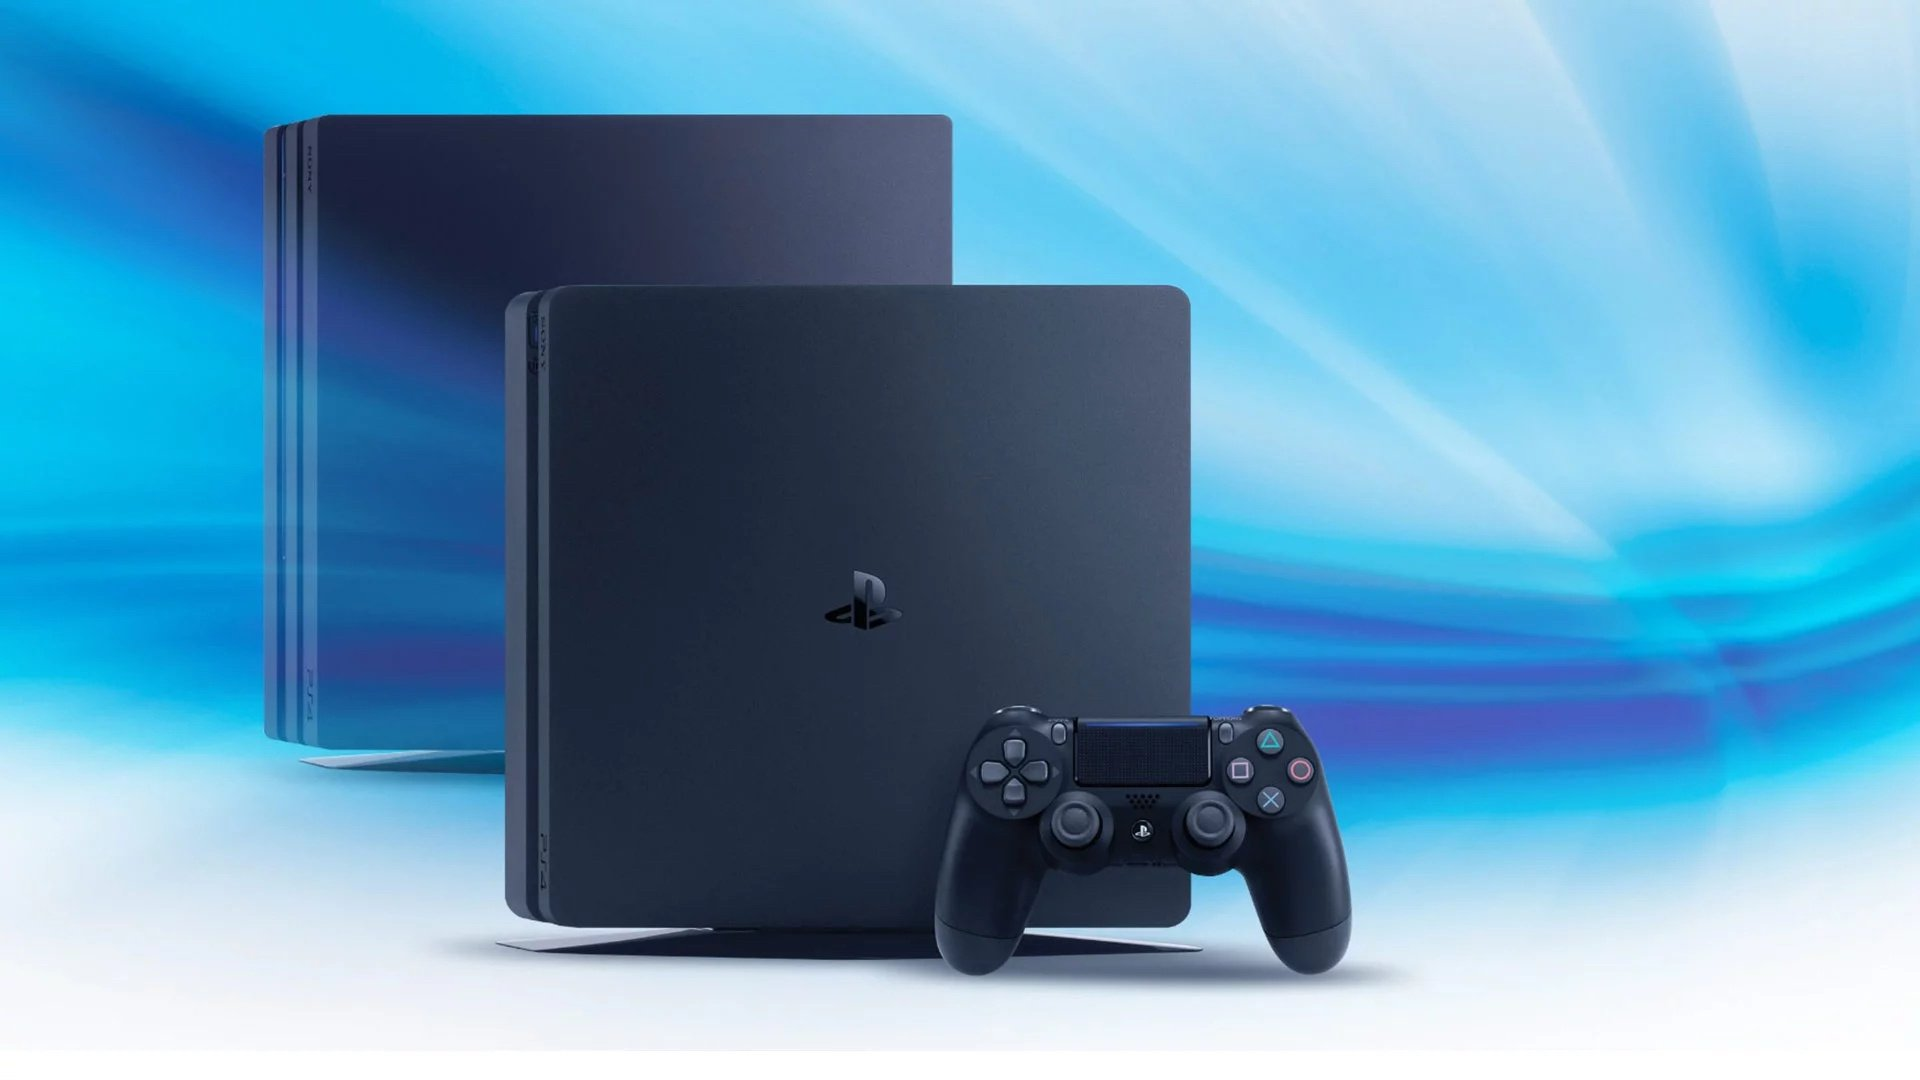 Official PlayStation Black Friday lineup includes PS4 Pro, PSVR, and GOTY deals